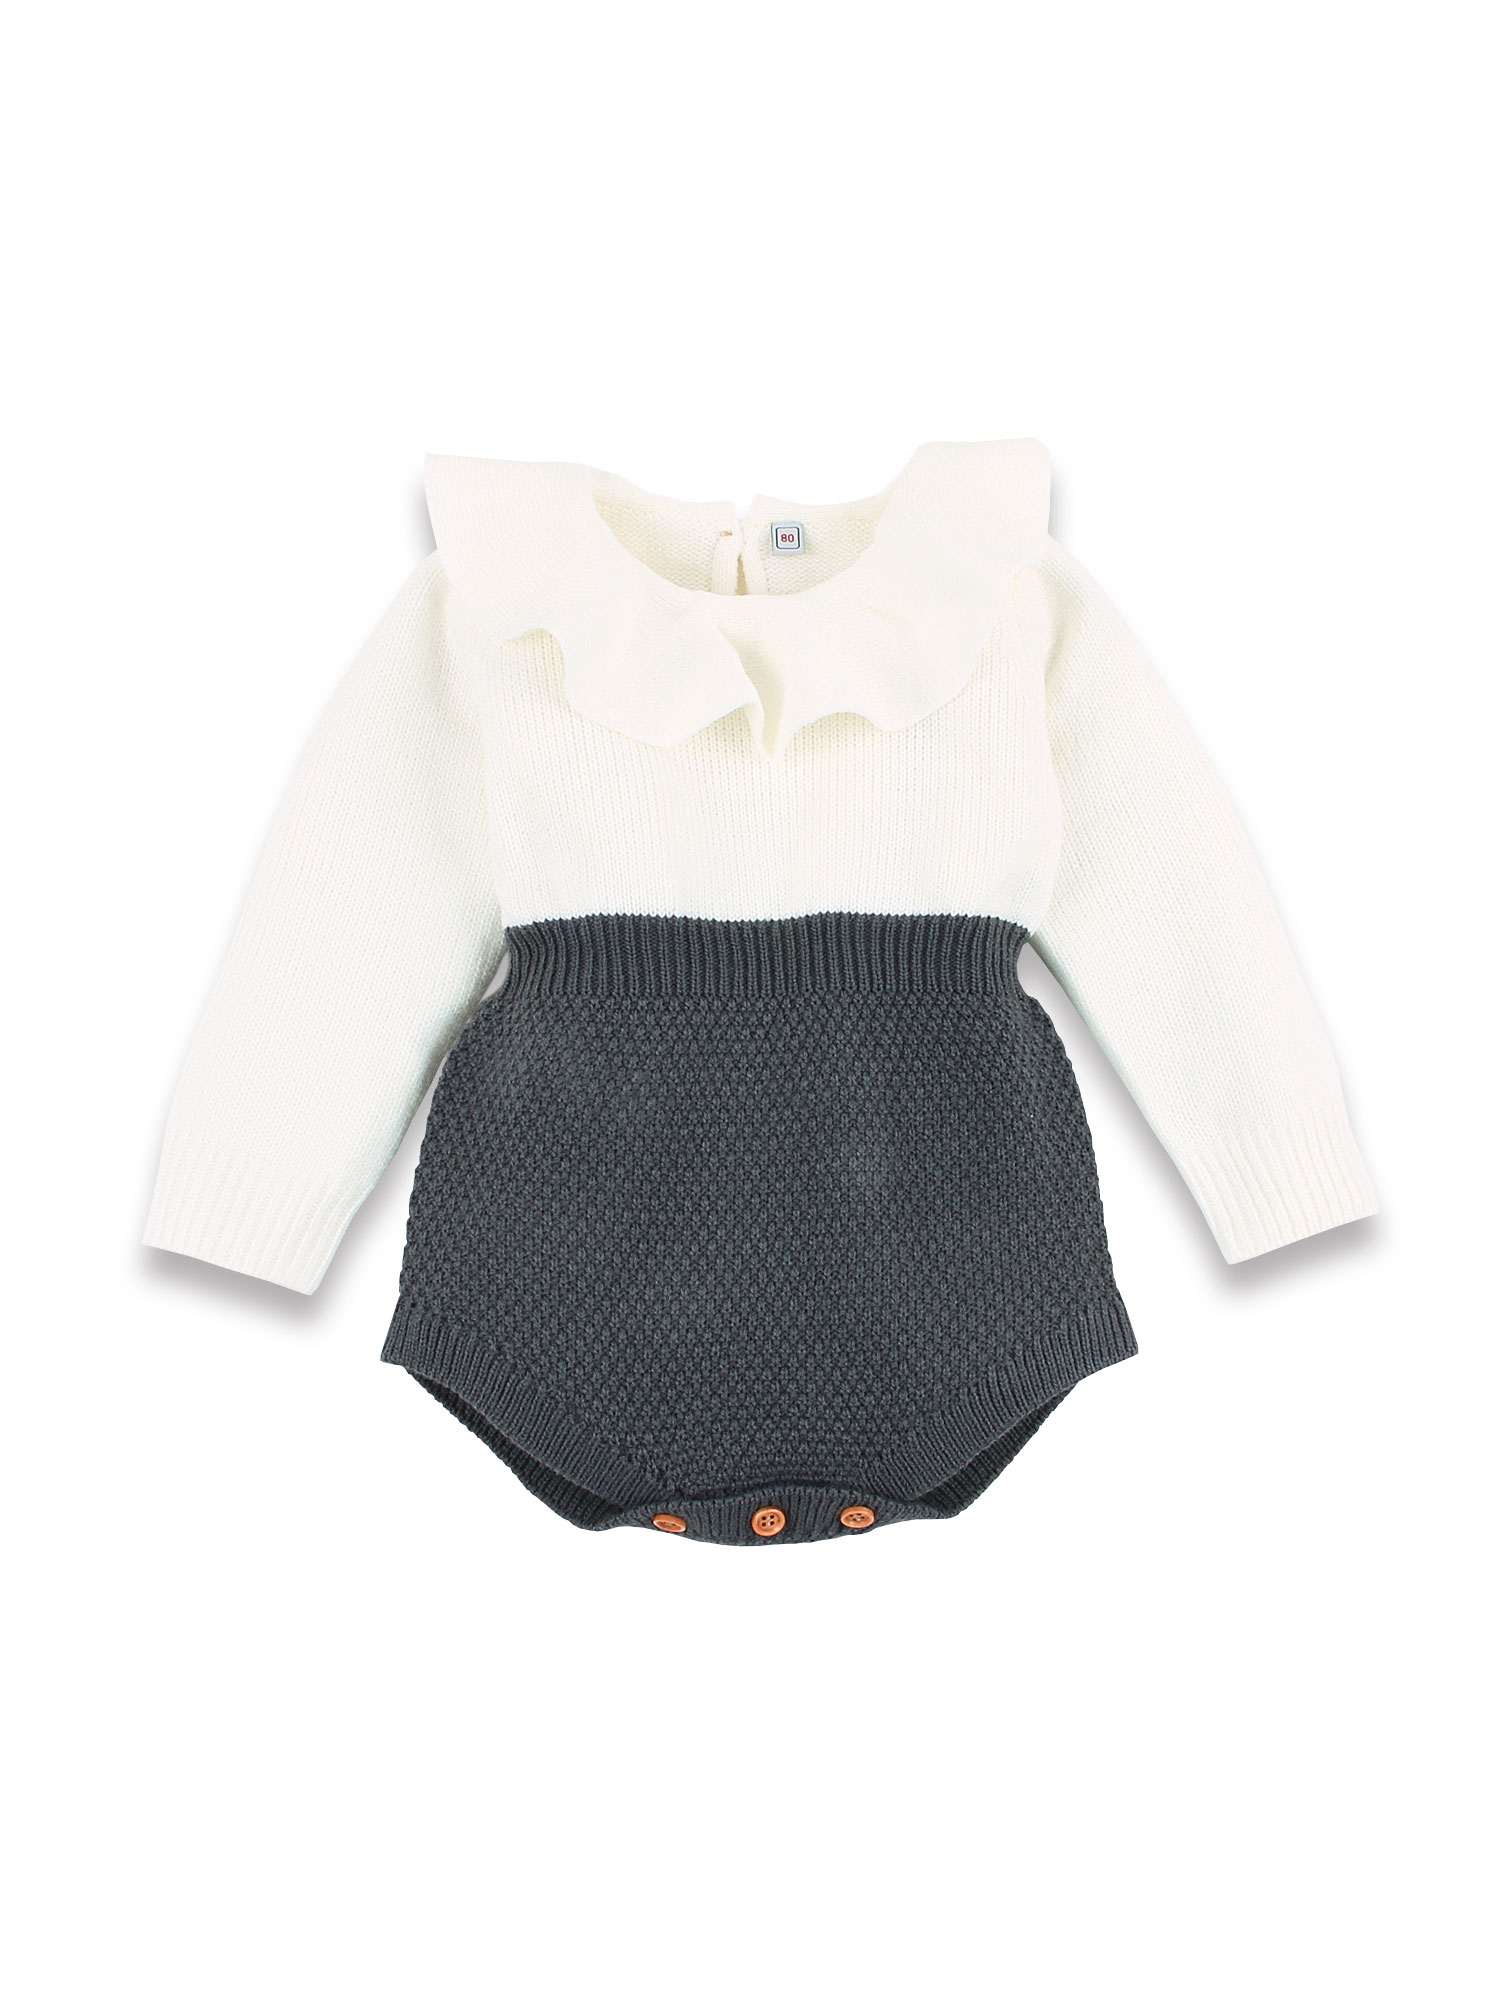 Baby Girls Romper Knitted Ruffle Long Sleeve Jumpsuit OutfitsBaby Toddler Romper Autumn Winter Casual